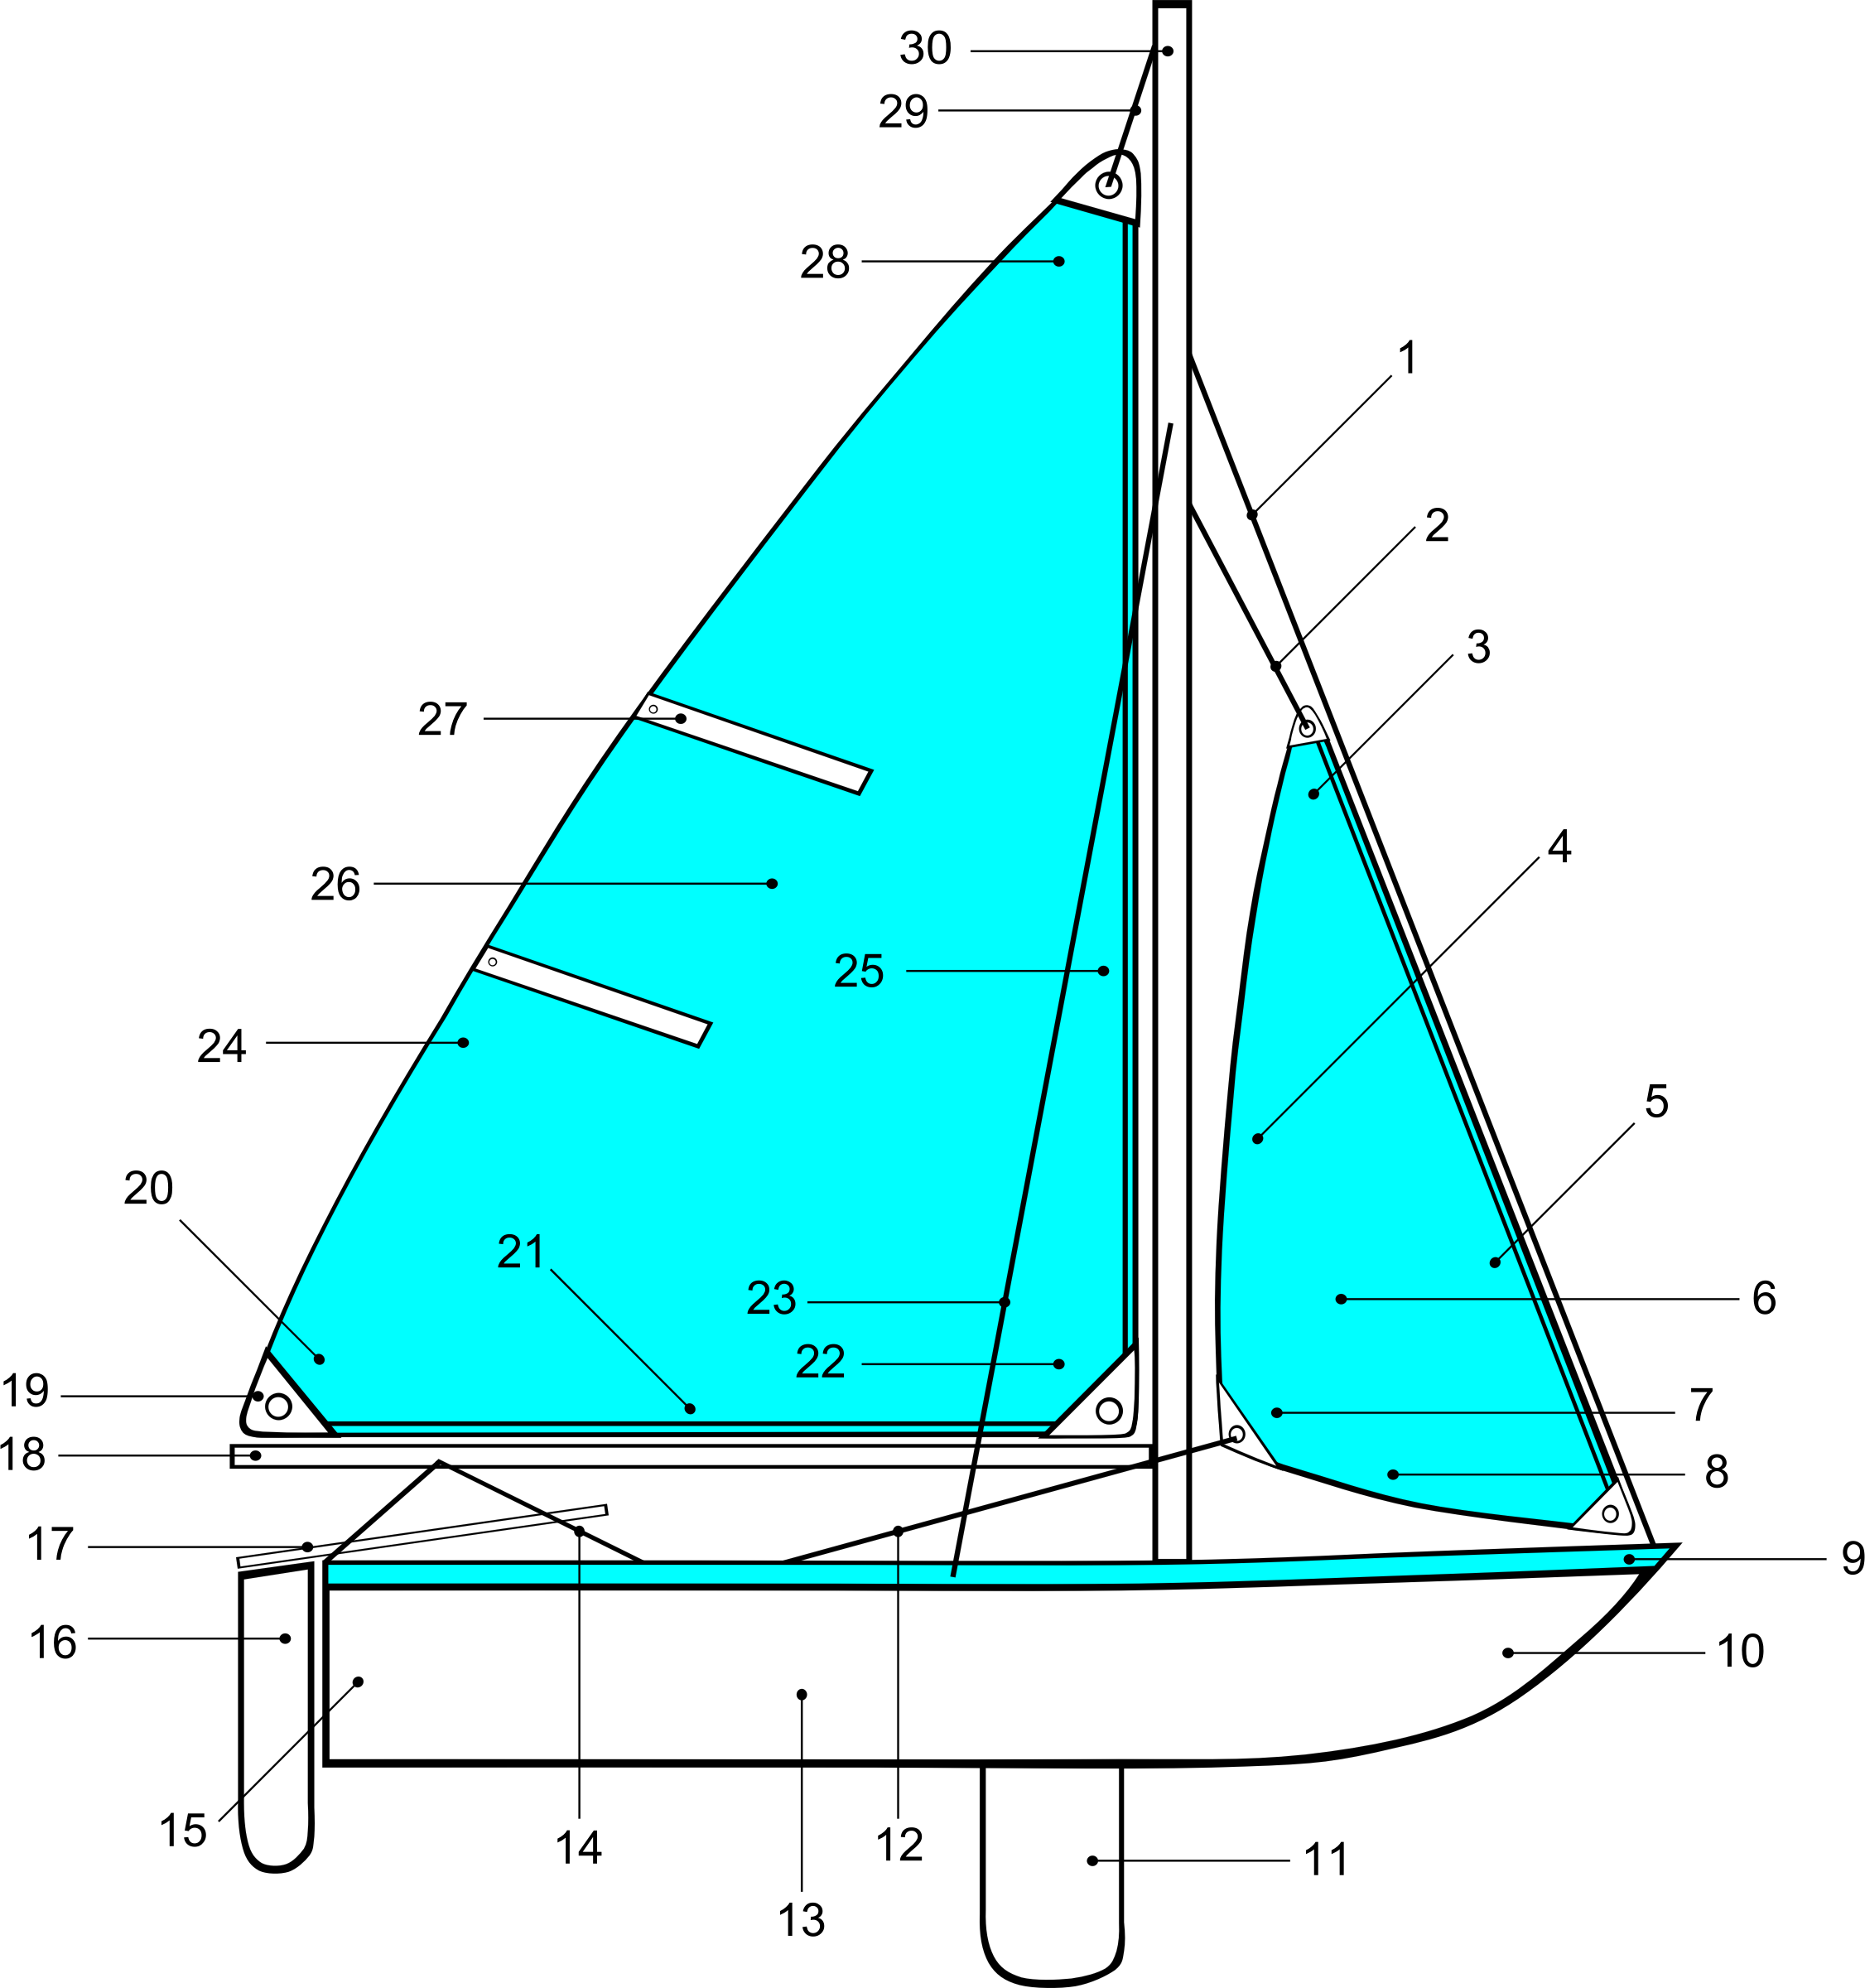 Sailing Parts of Boat Illustration by Gerald_G